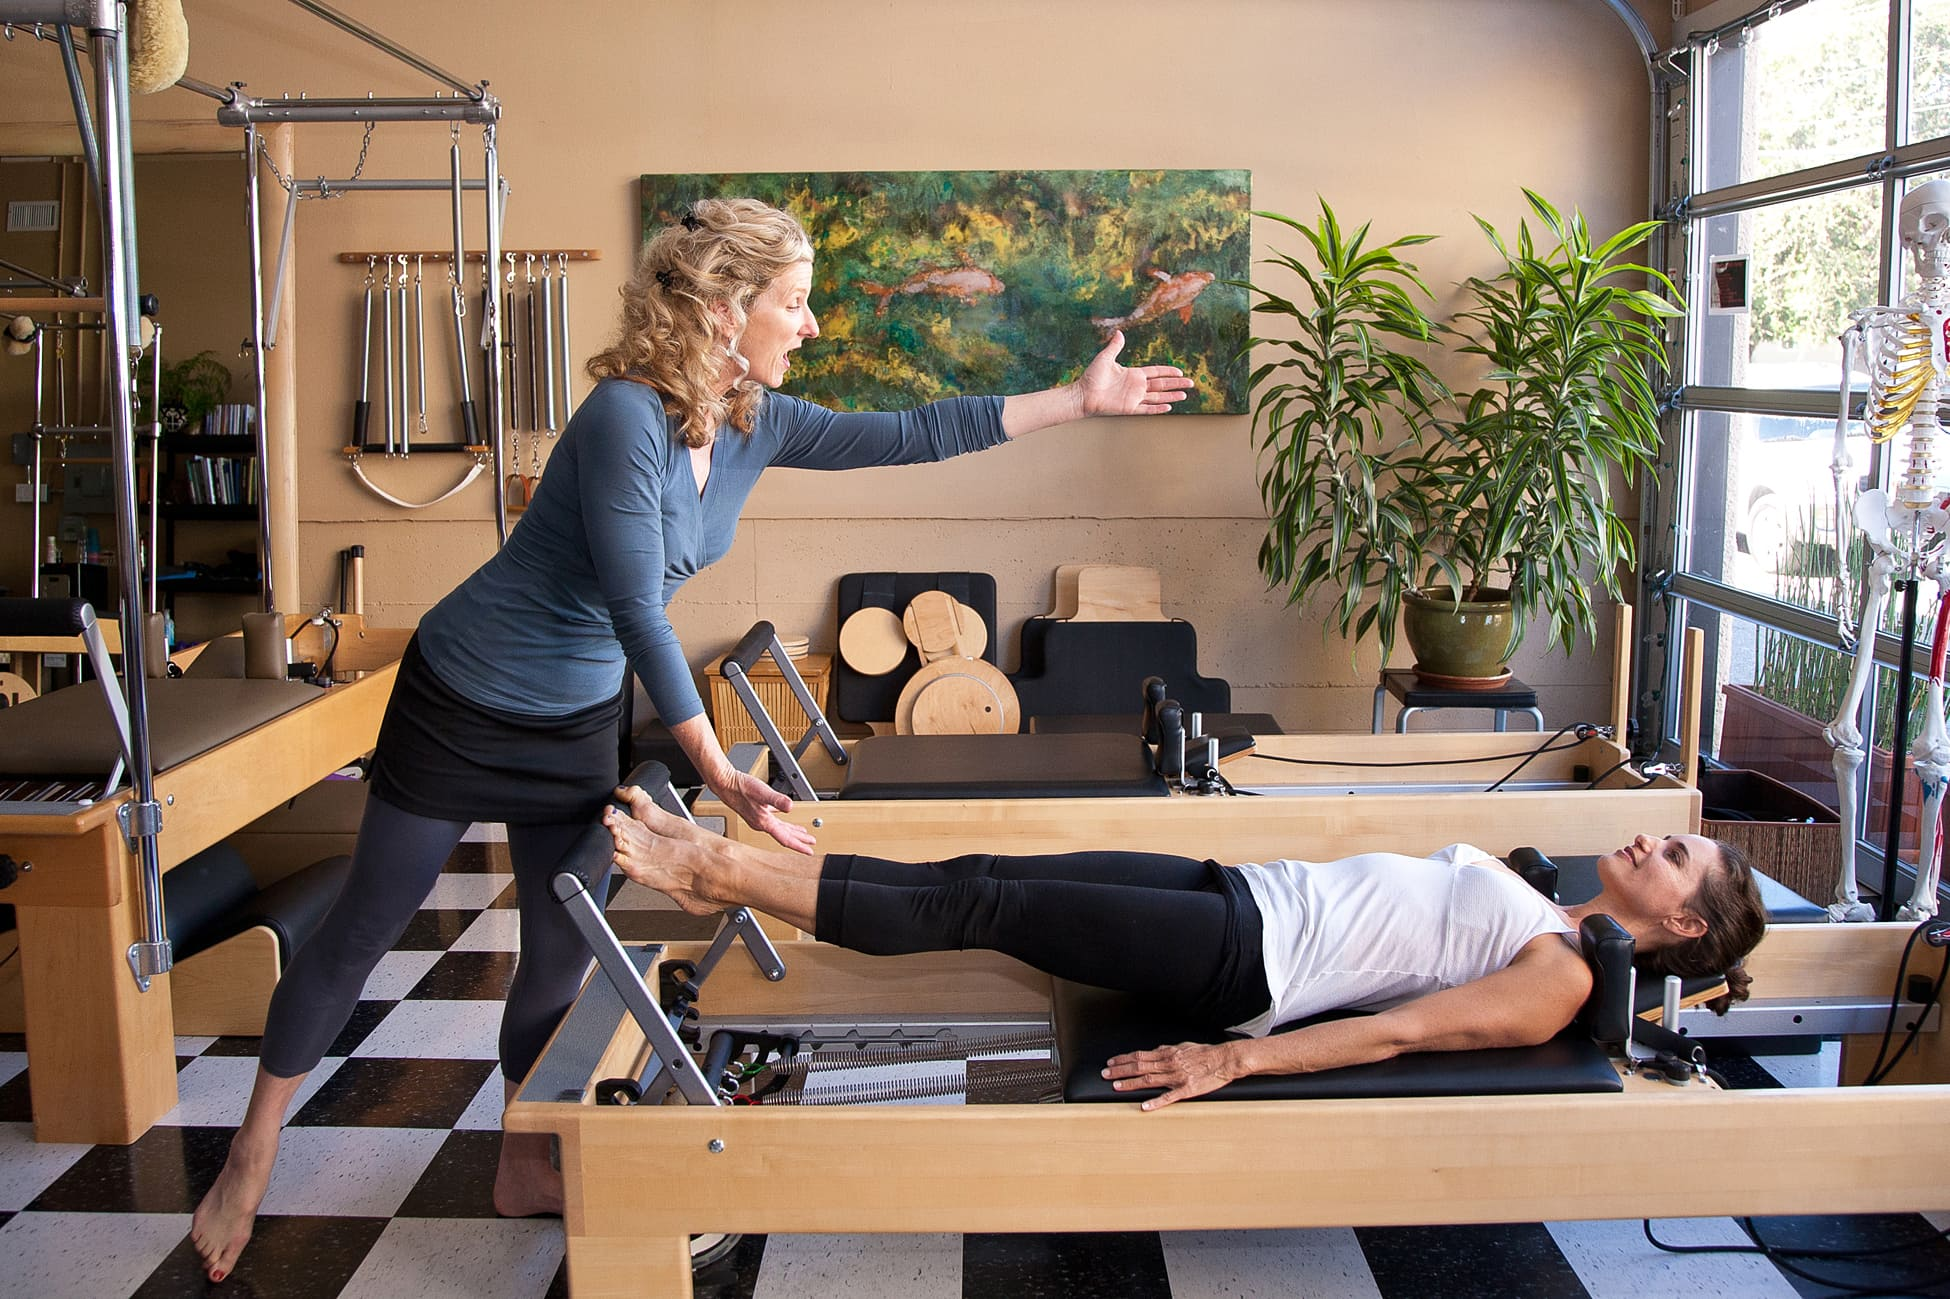 Kathleen's pilates practice photographed by Larry Dyer